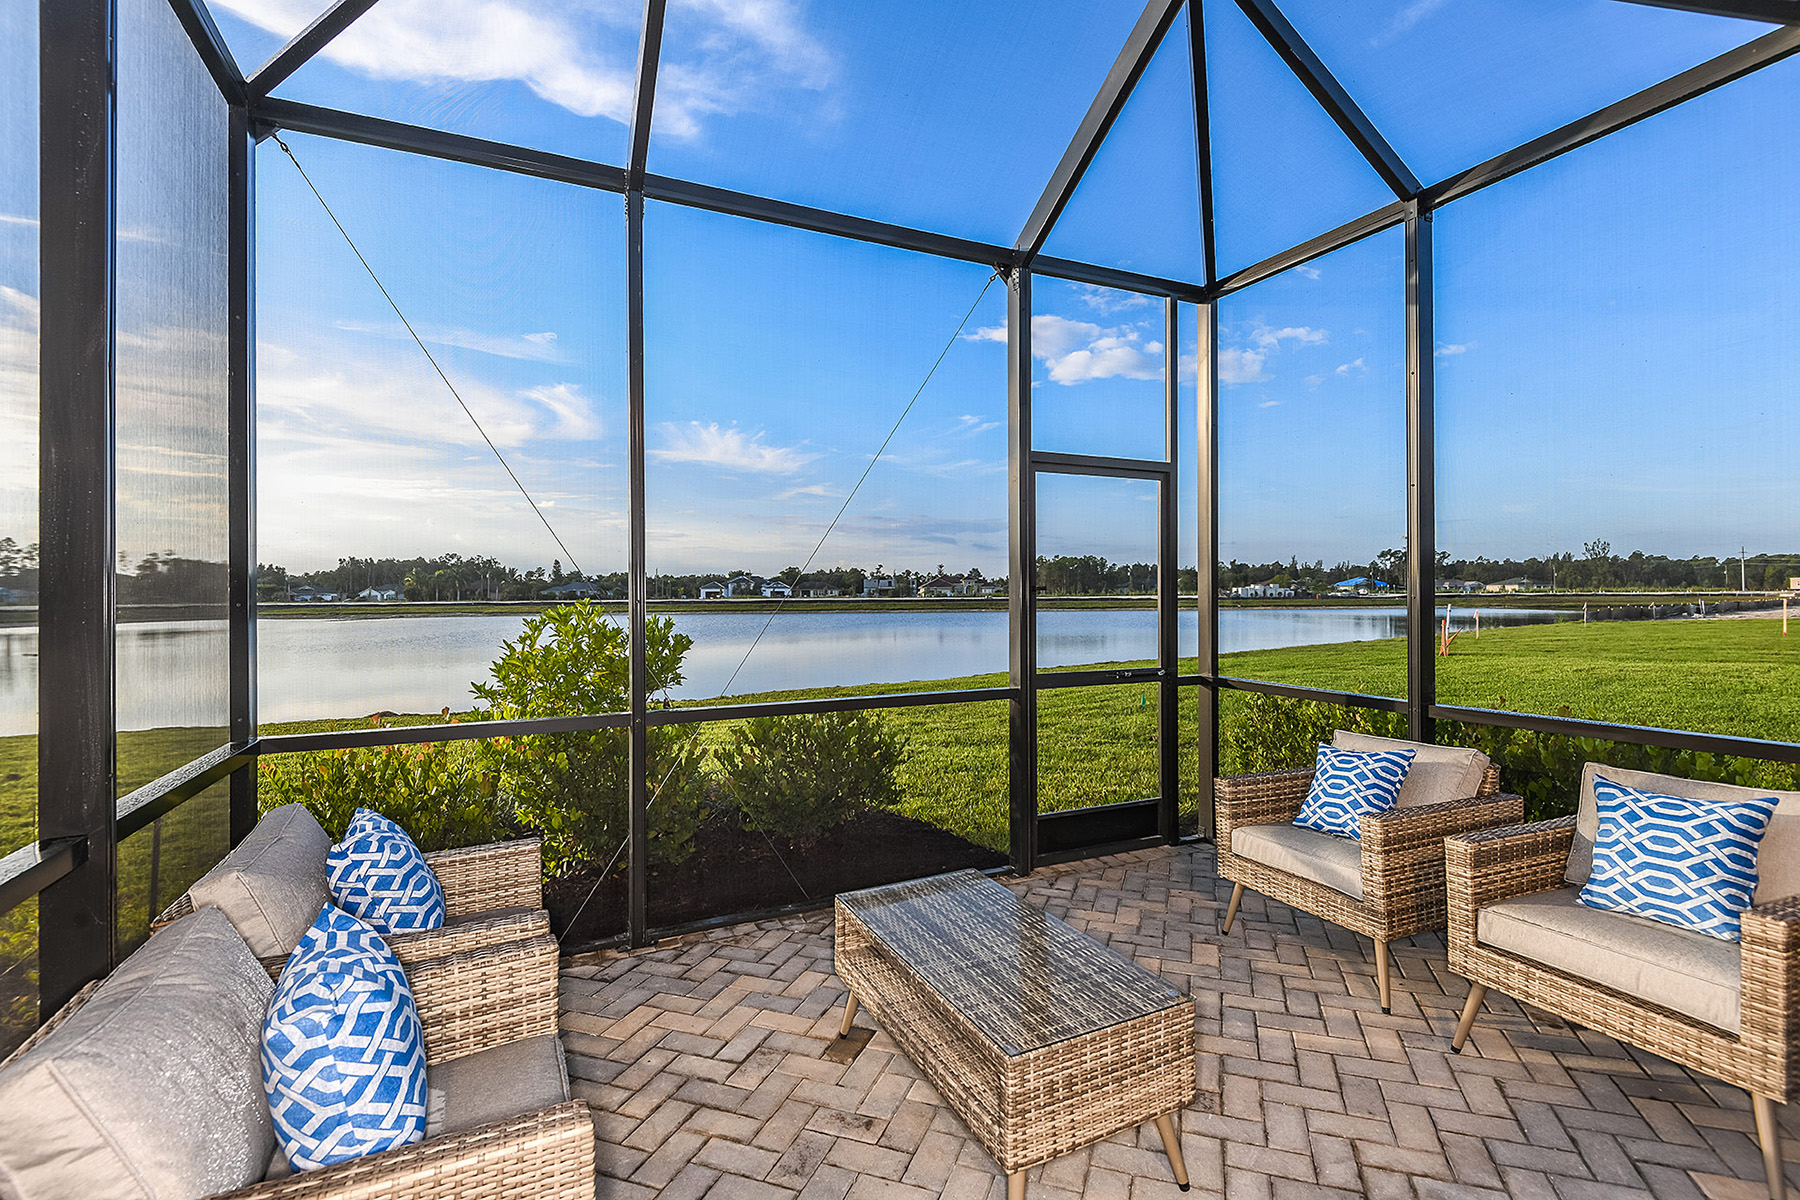 Bonavie Cove Patio in Fort Myers Florida by Mattamy Homes